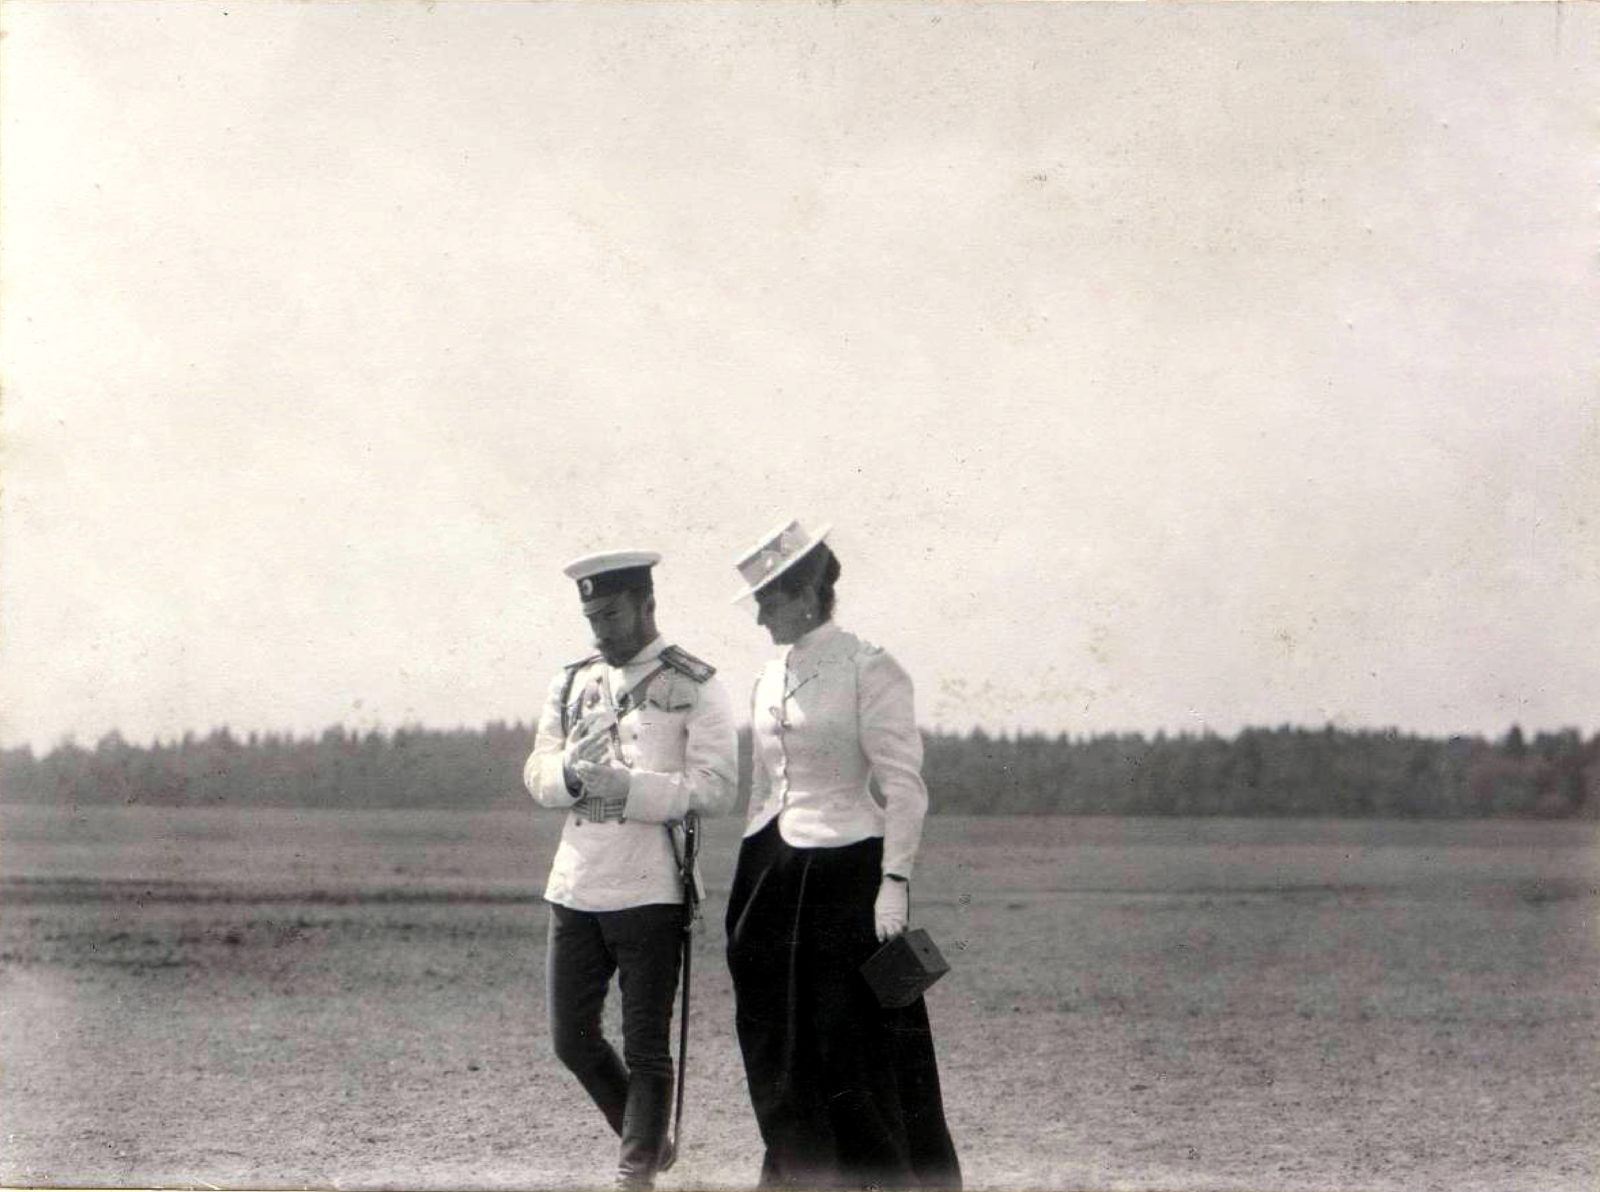 Nicholas II and Alexandra Feodorovna during a walk.